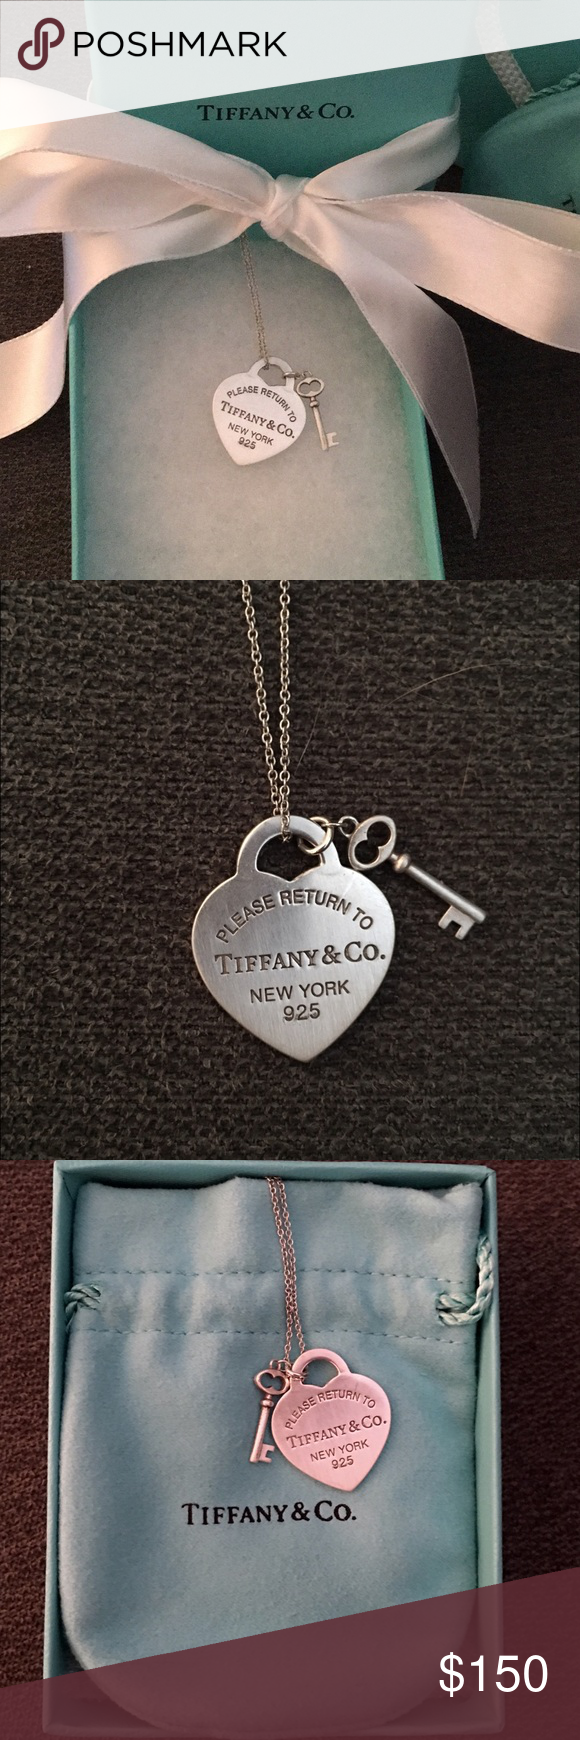 7331401eef35 Tiffany   Co. Silver Necklace Heart Tag The classic Return to Tiffany Heart  Tag With Key Pendant. In perfect condition